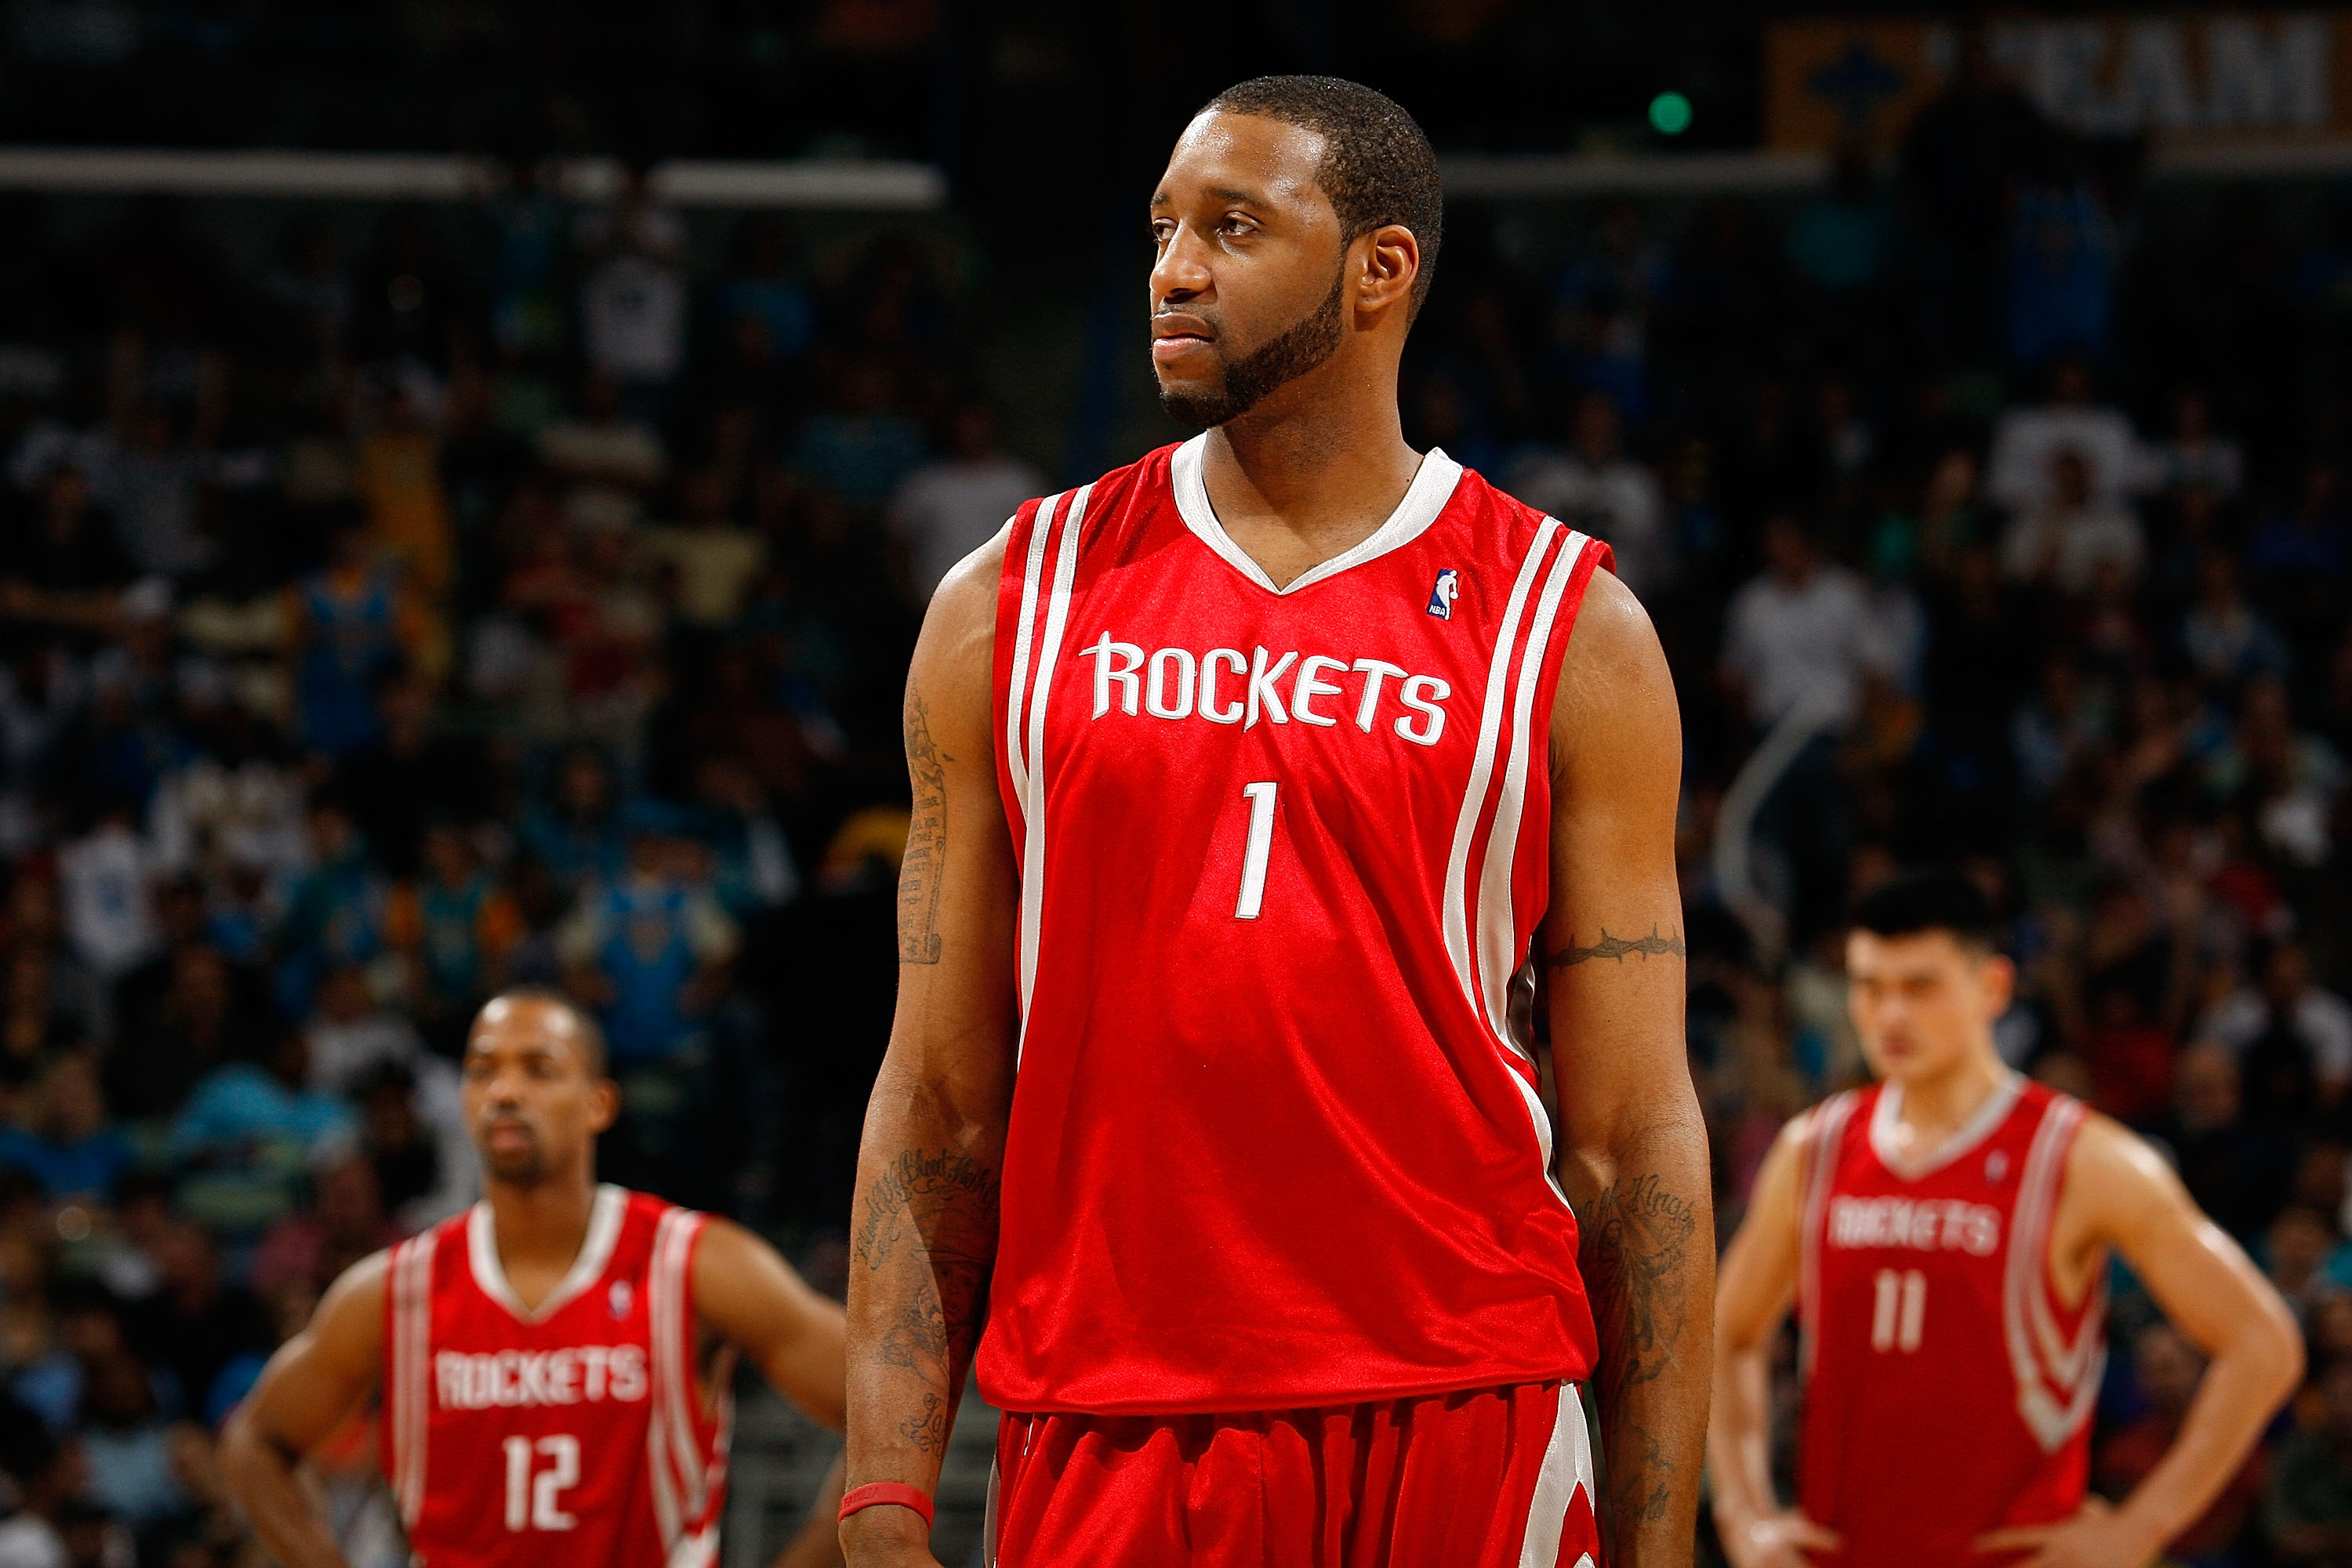 Tracy McGrady walking up the court during a Rockets game